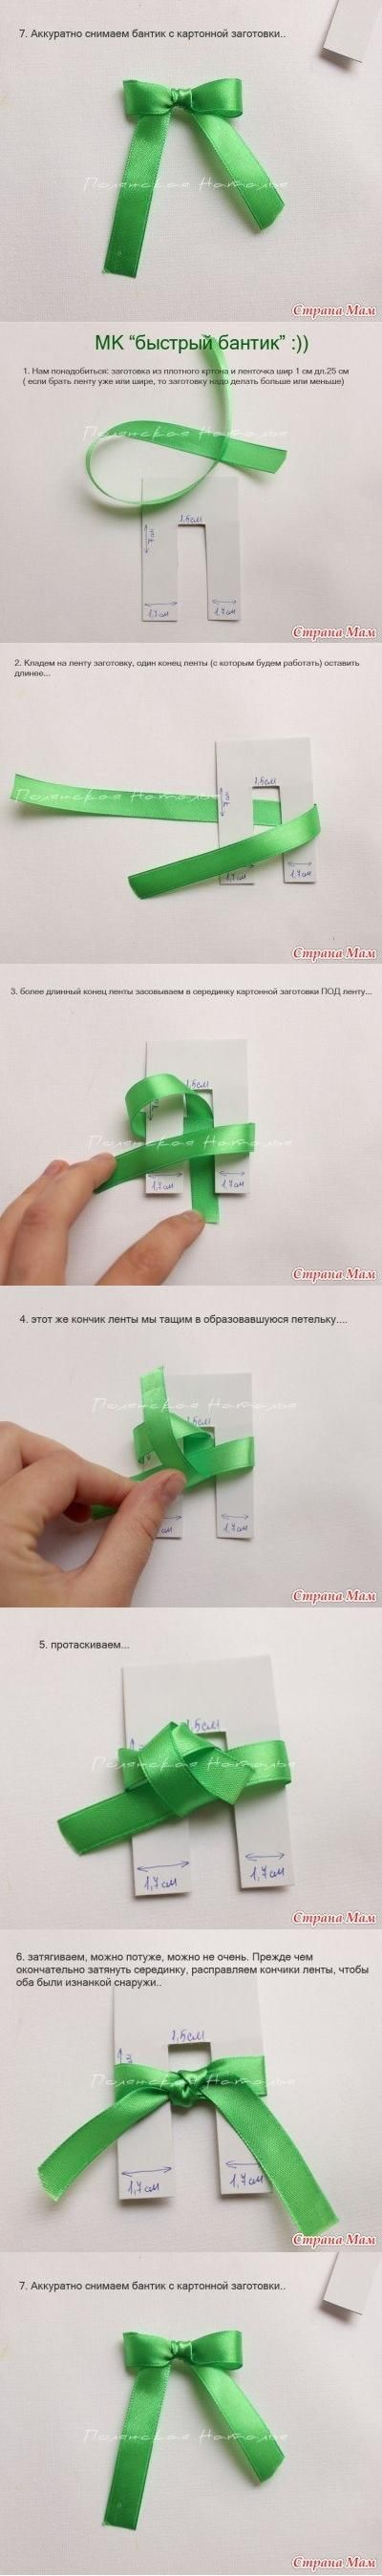 DIY Easy Ribbon Bow DIY Projects / UsefulDIY.com